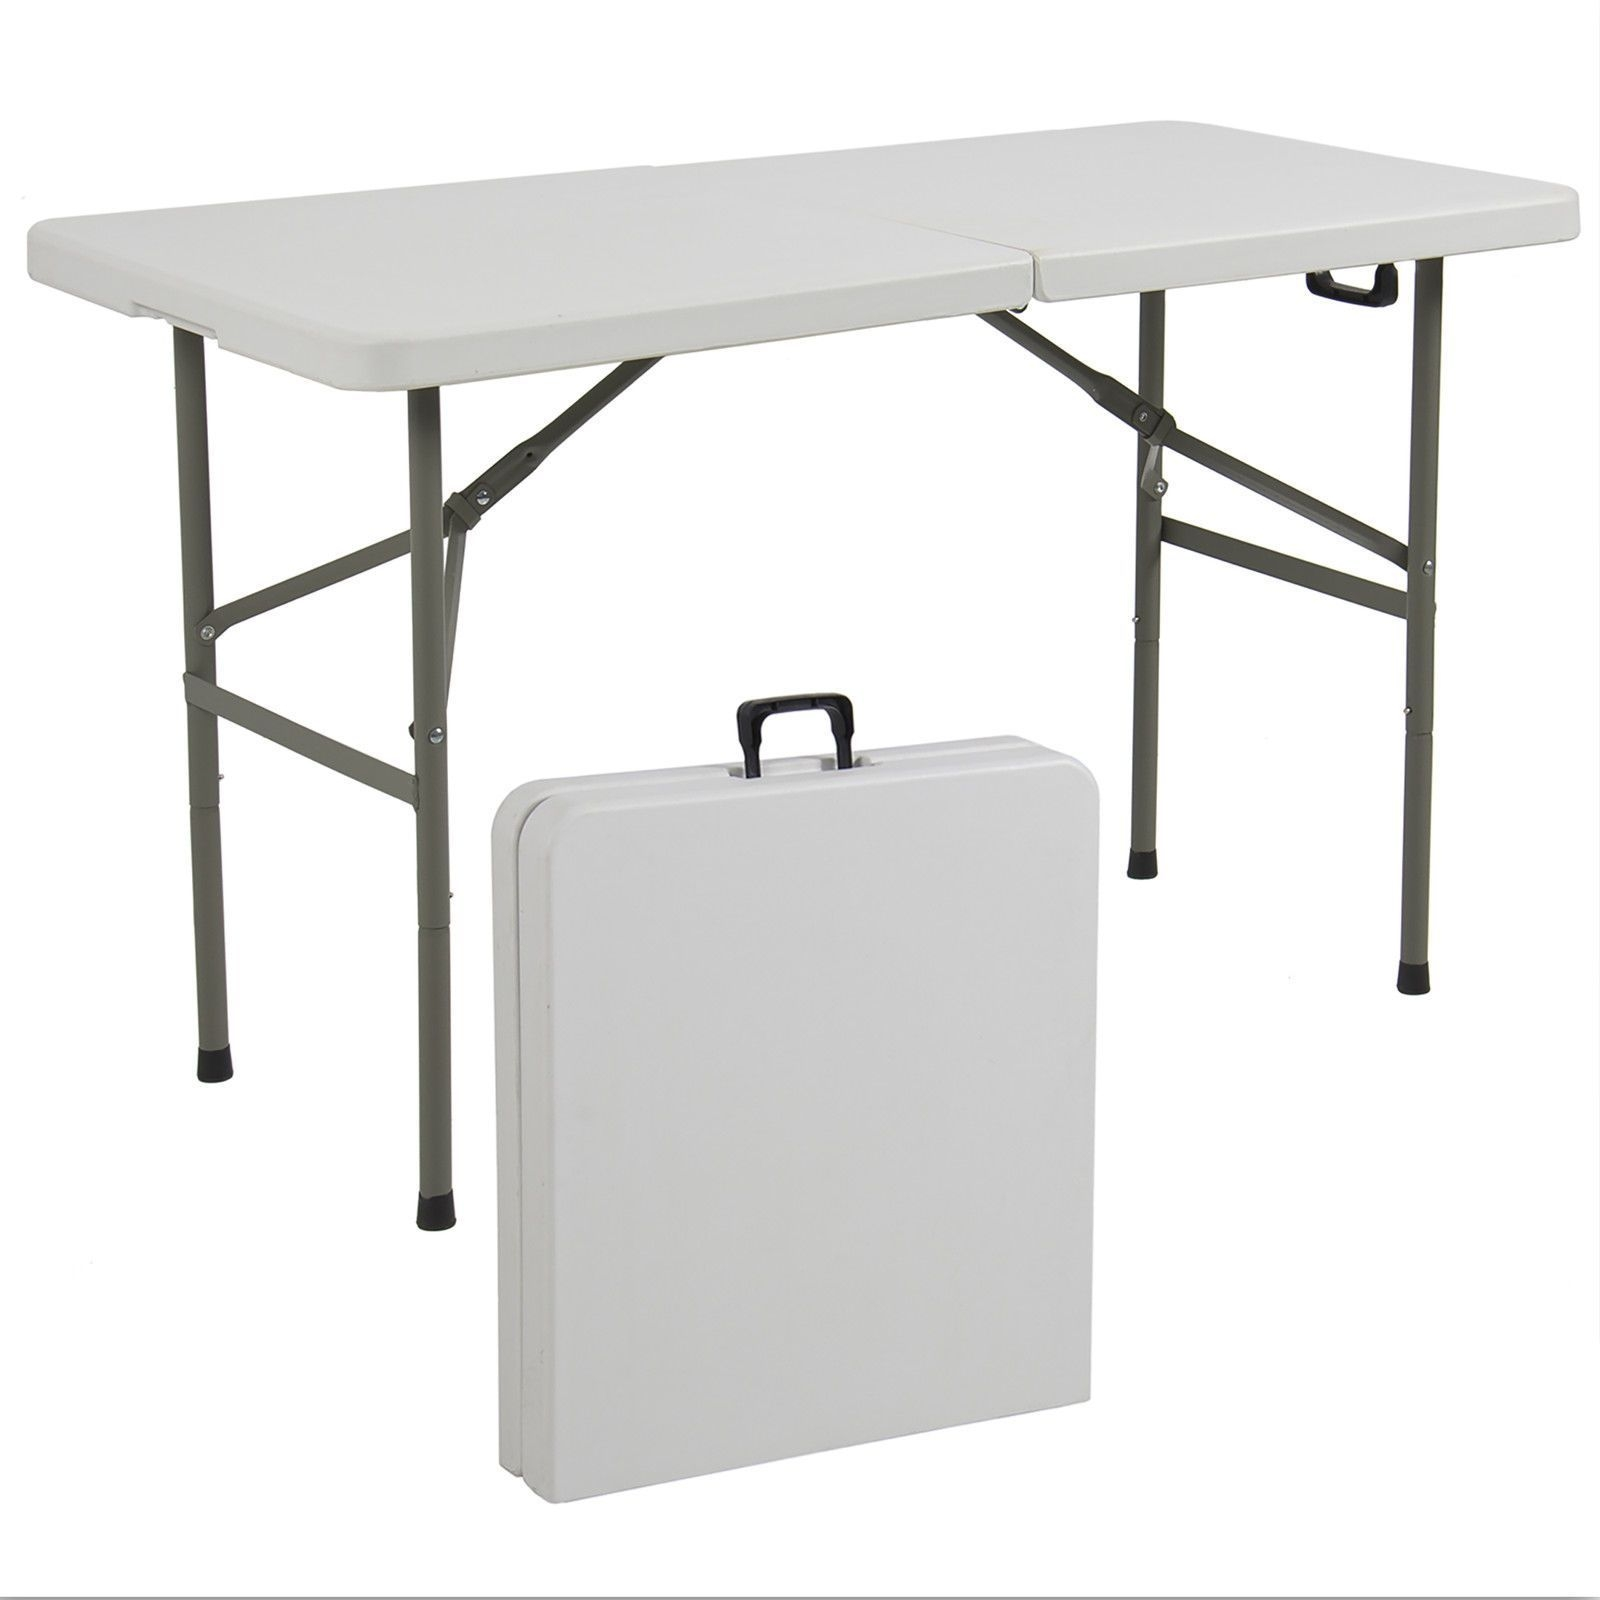 Best Choice Products® 4' Multipurpose Utility Center-Fold Folding Table w/ Carrying Handle - White Granite Top Color w/ Gray Frame